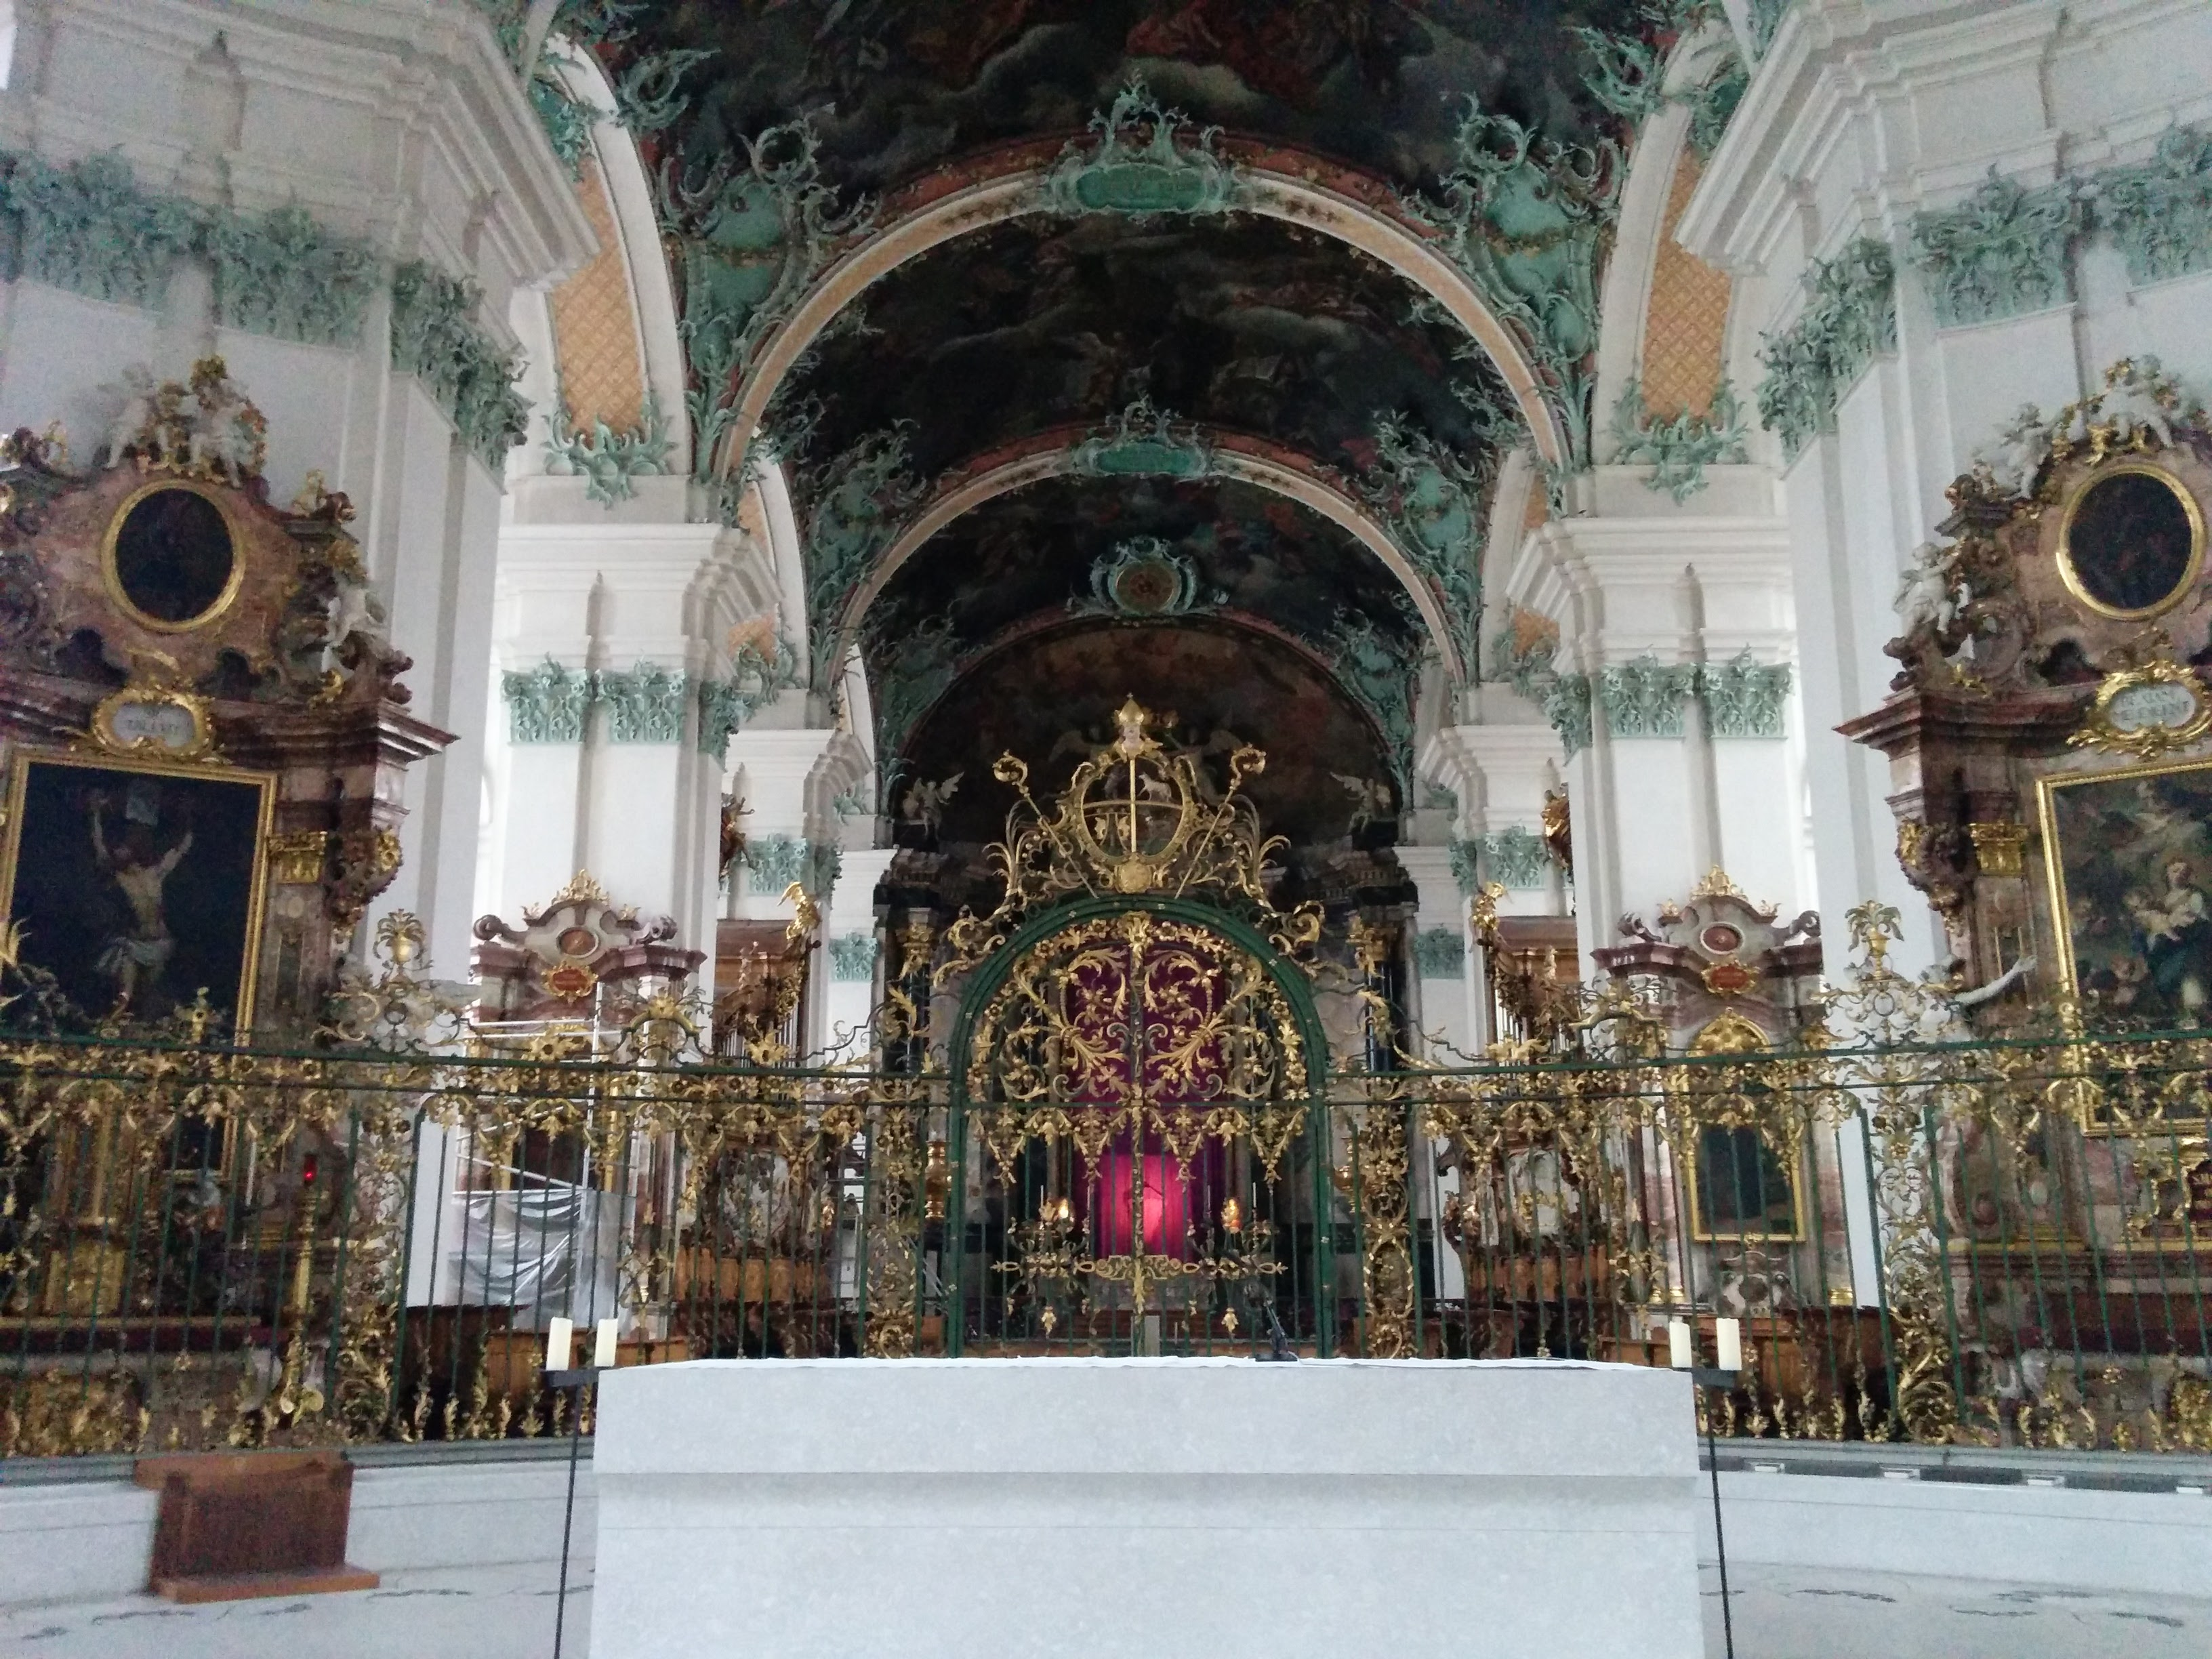 Inside of the Abbey of St. Gall